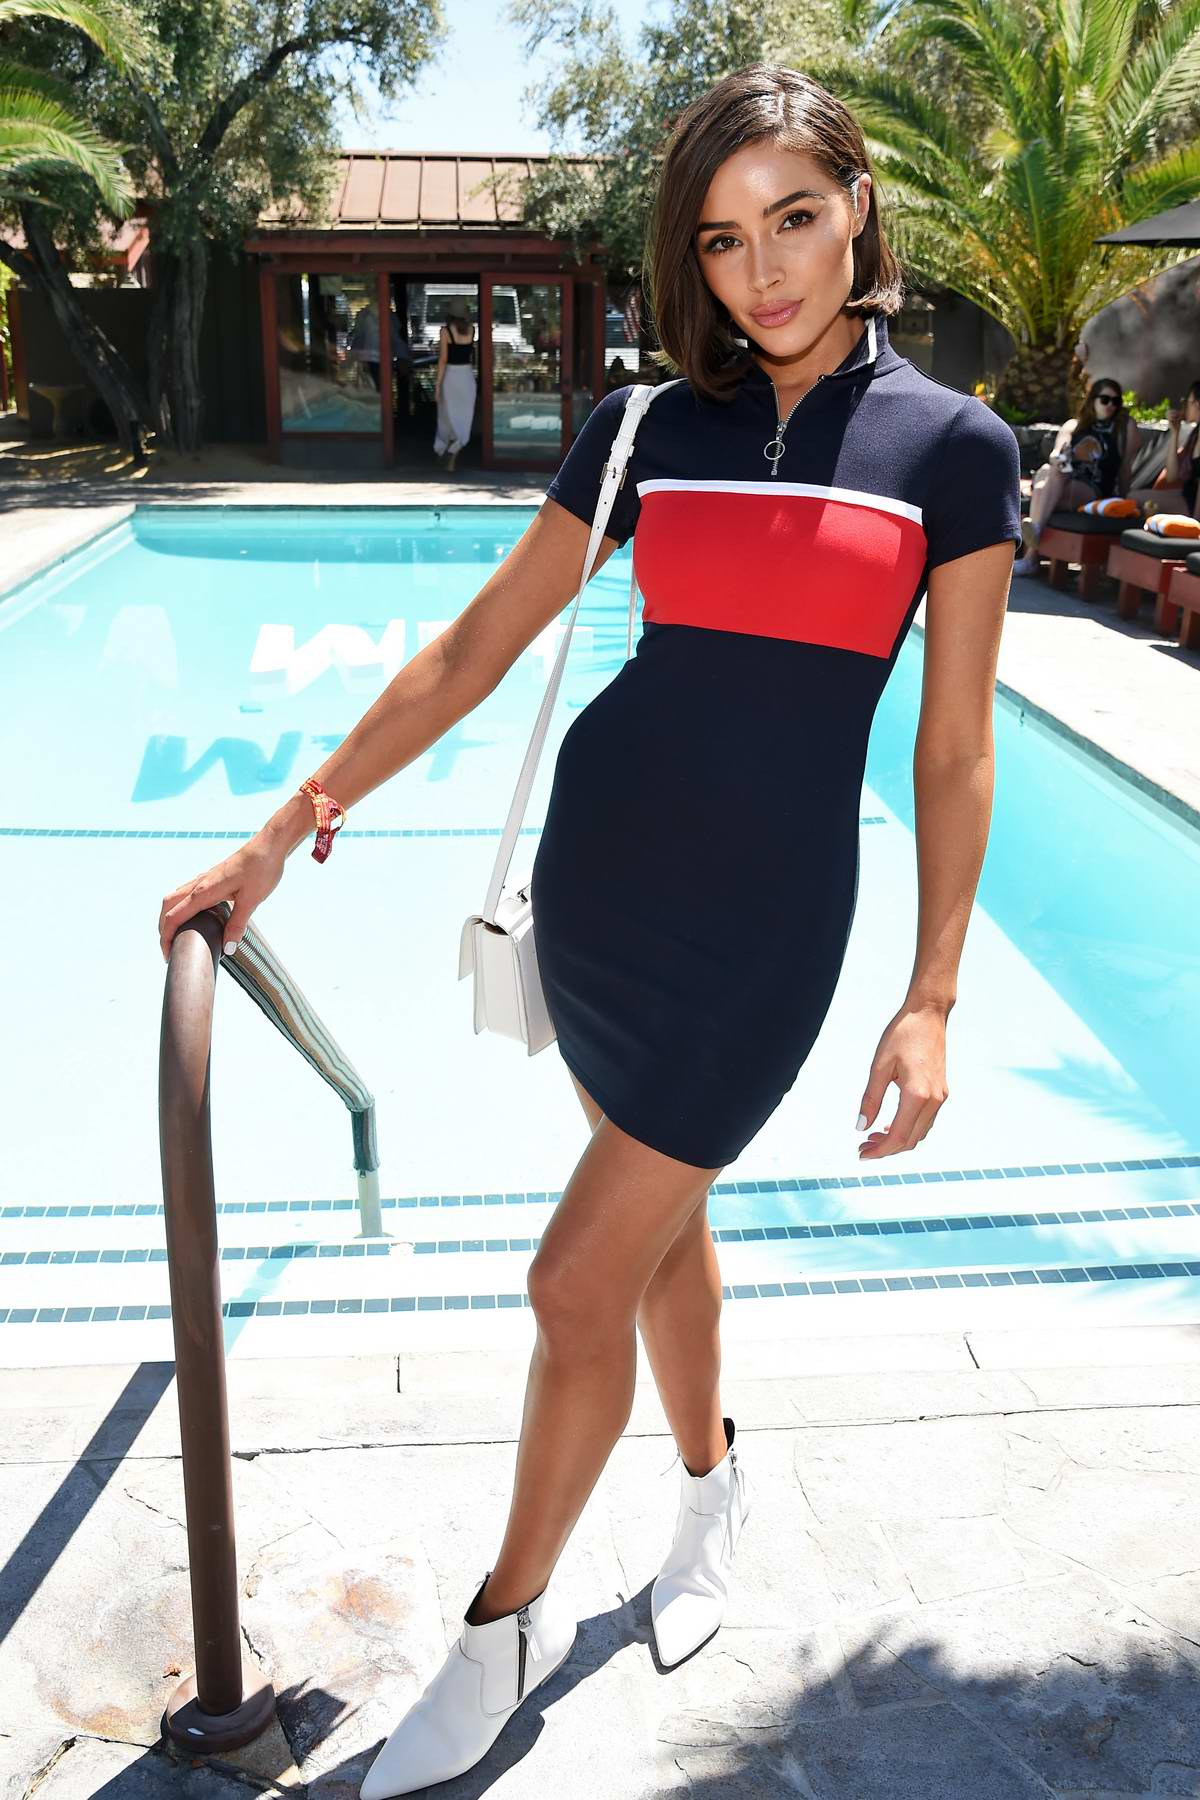 Olivia Culpo attends Poolside with H&M at Sparrow's Lodge in Palm Springs, California